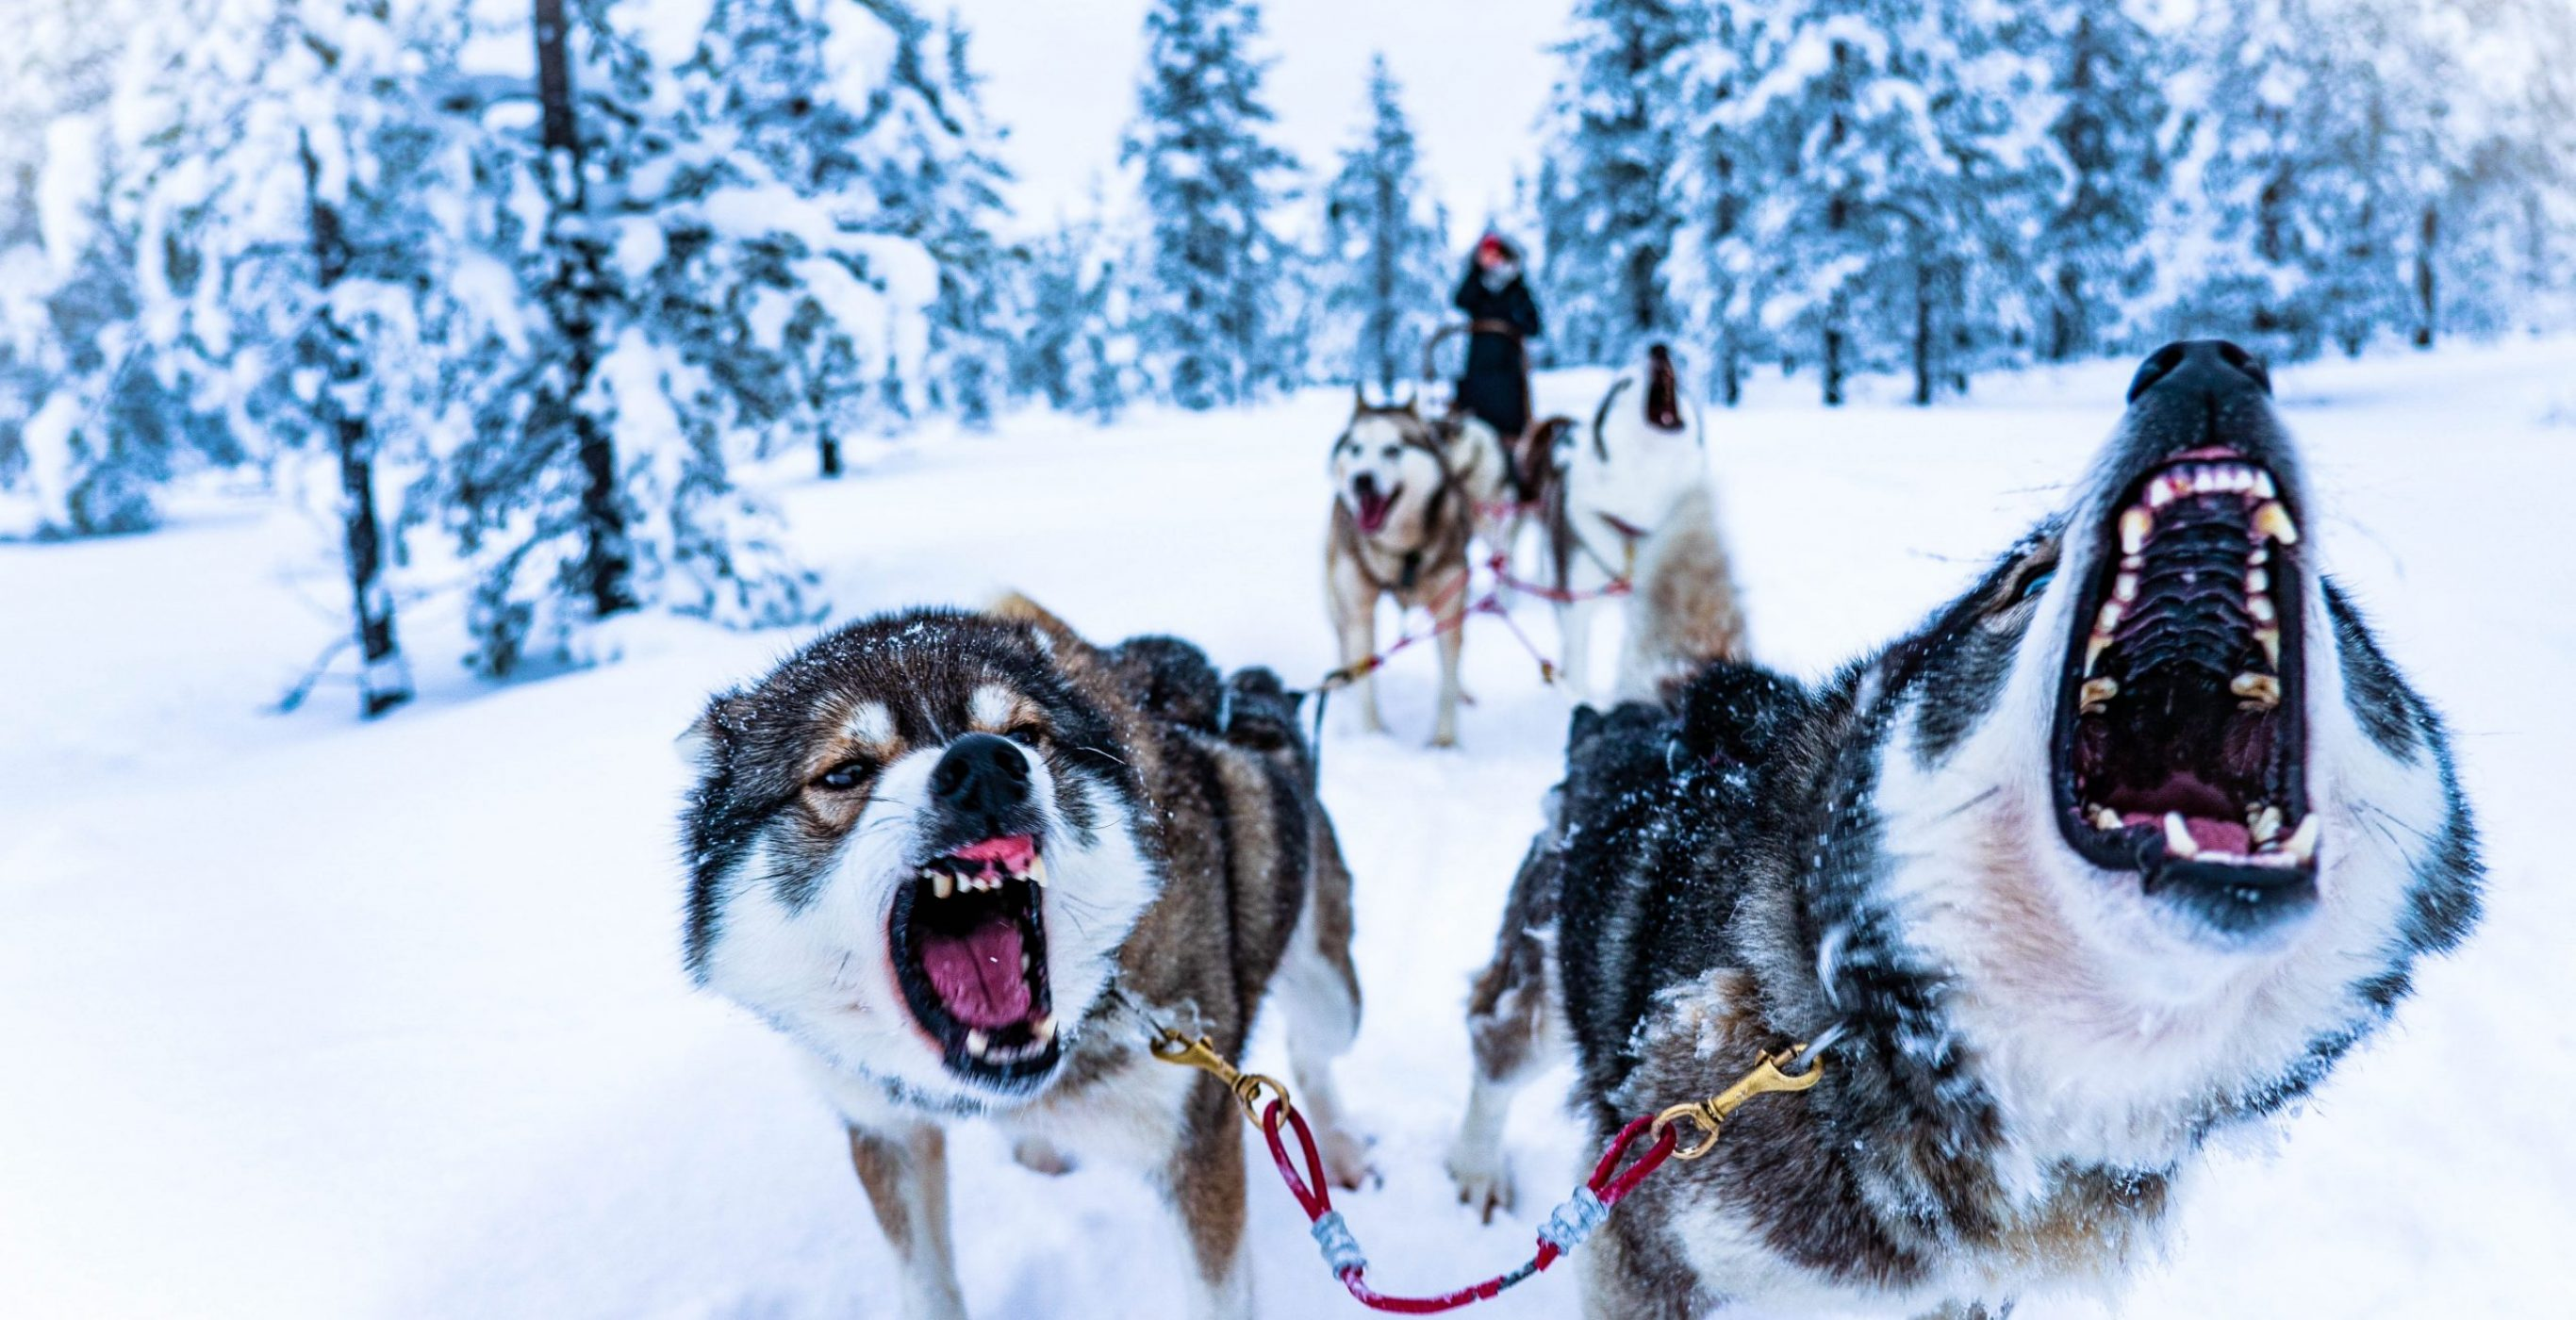 Dogs pulling a sled in a snow-laden pine-clad landscape, used as a featured image for the article